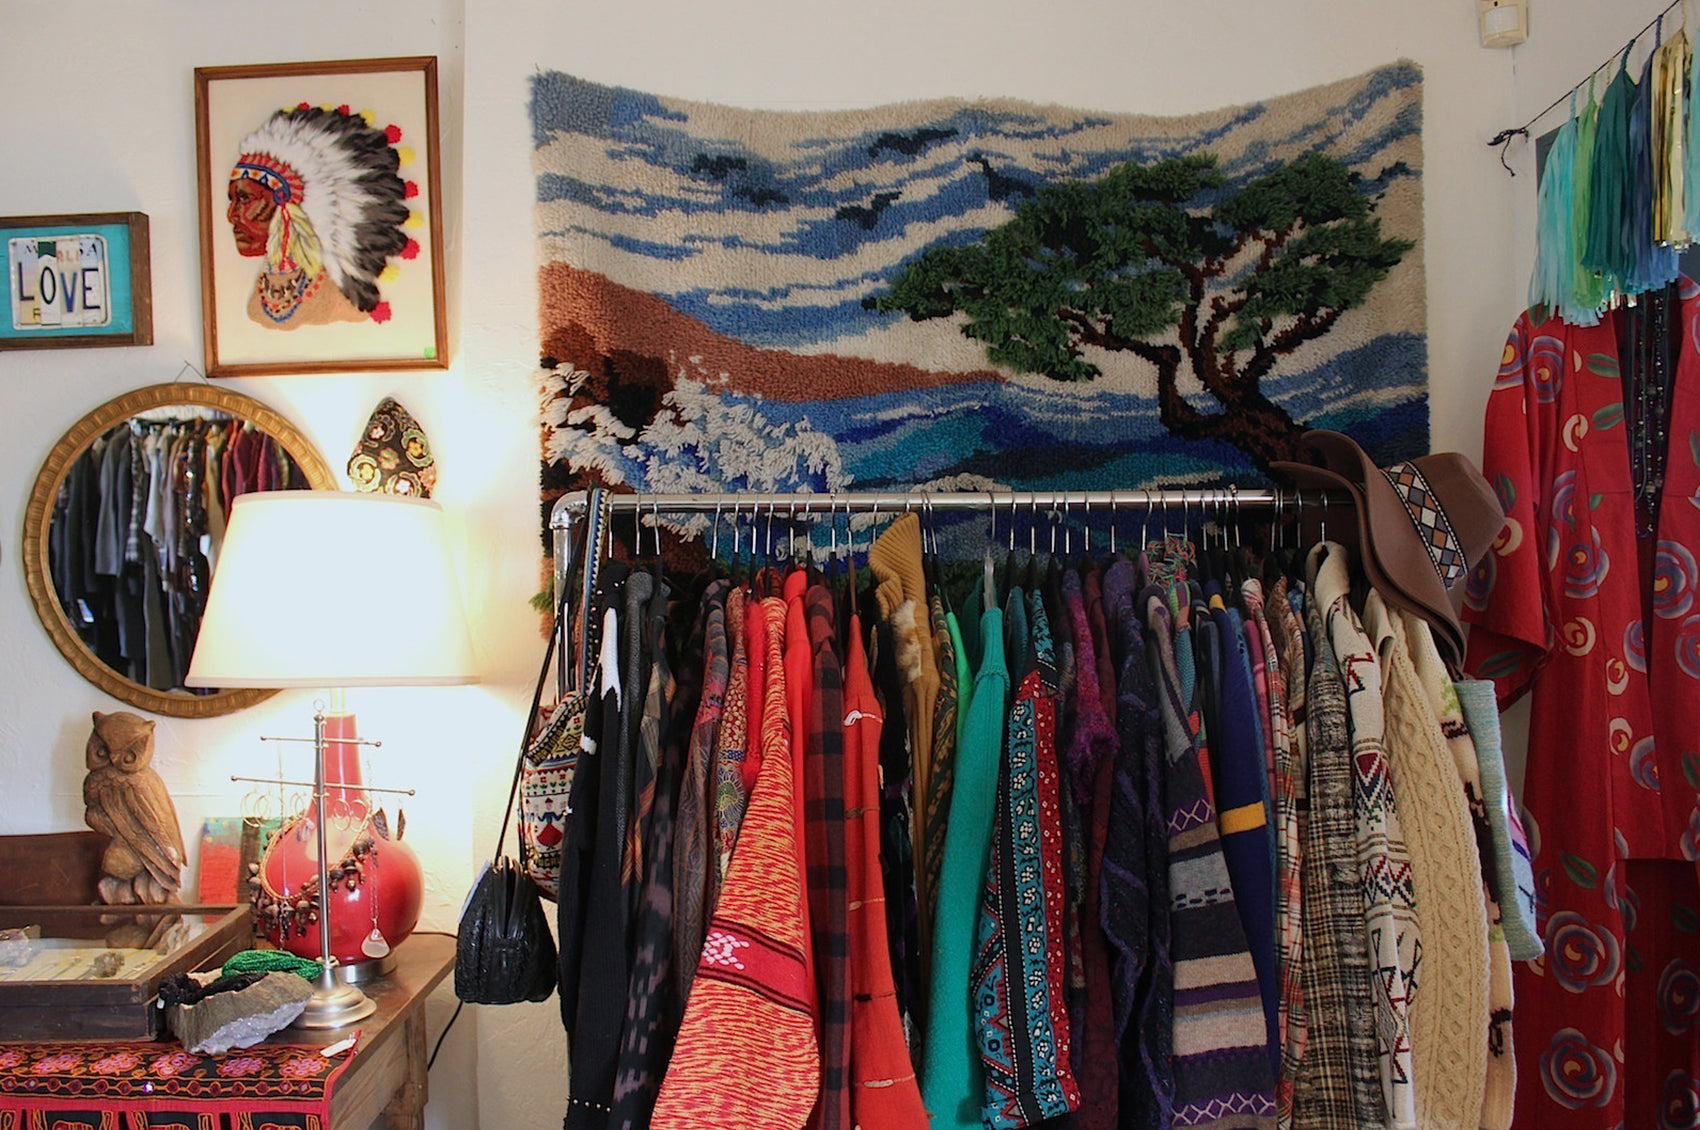 Rack of clothes and decorated wall in The End shop.